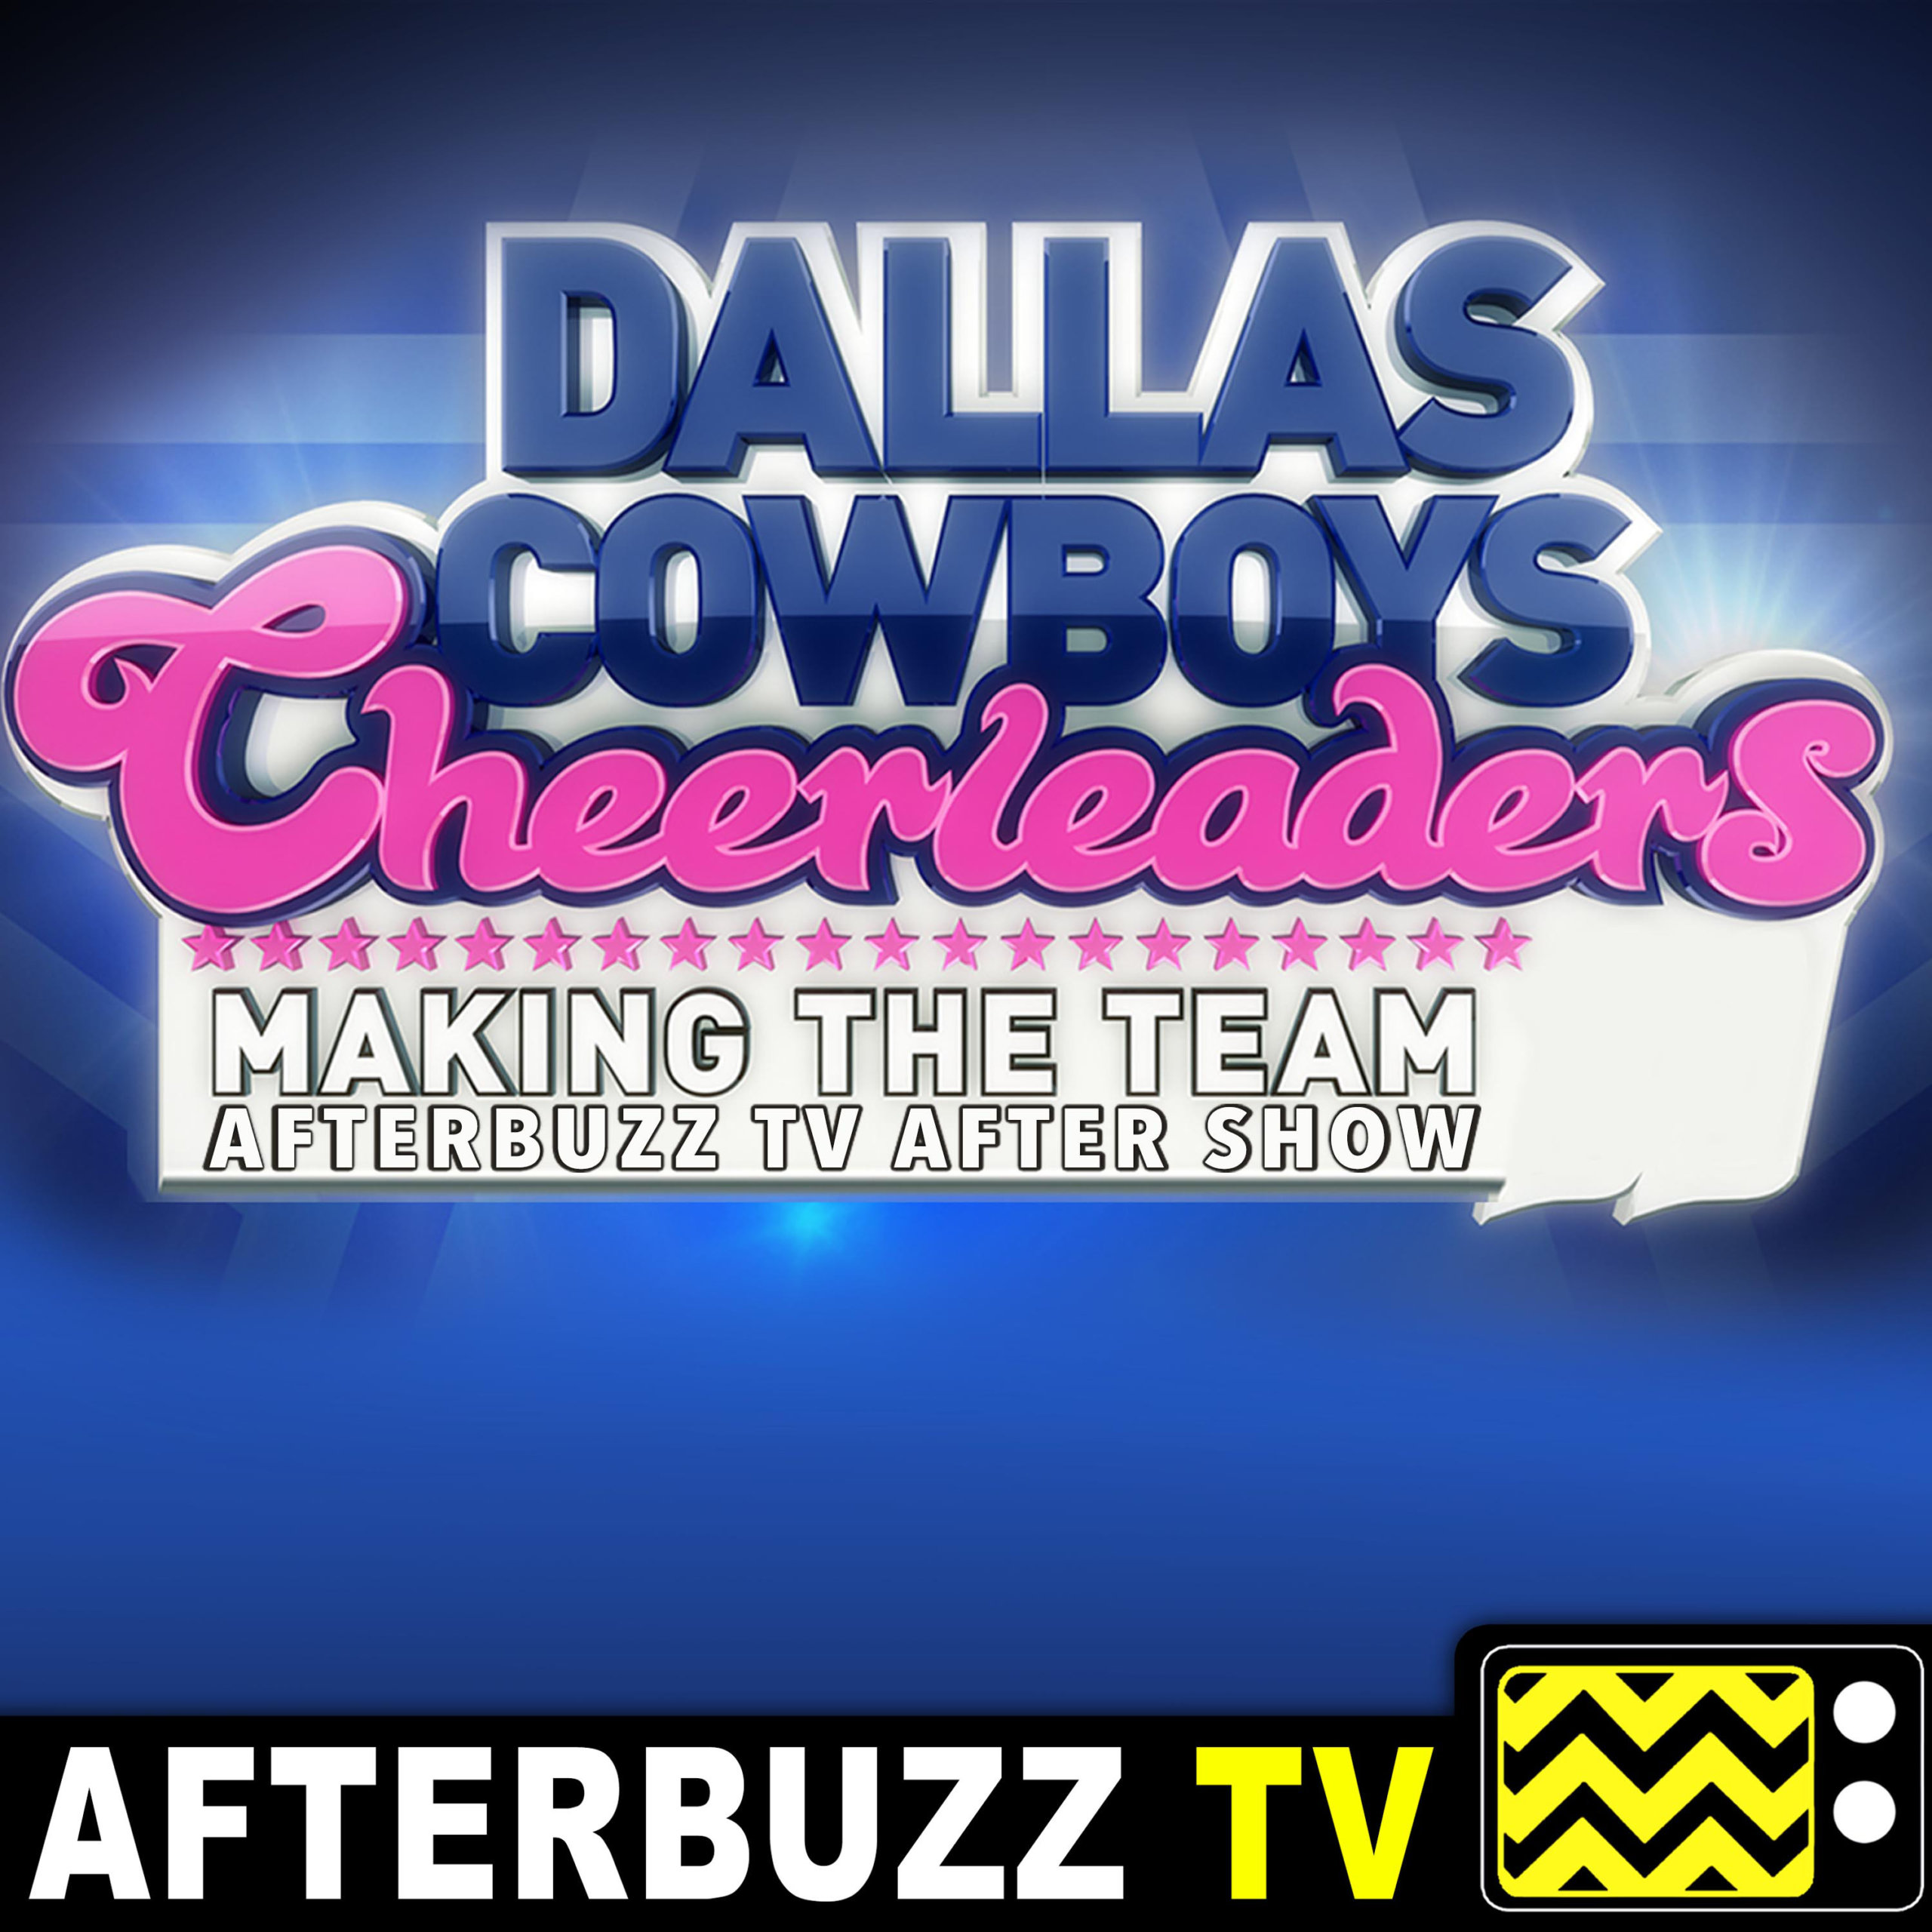 Dallas Cowboy Cheerleaders: Making The Team S:13 Game Day E:13